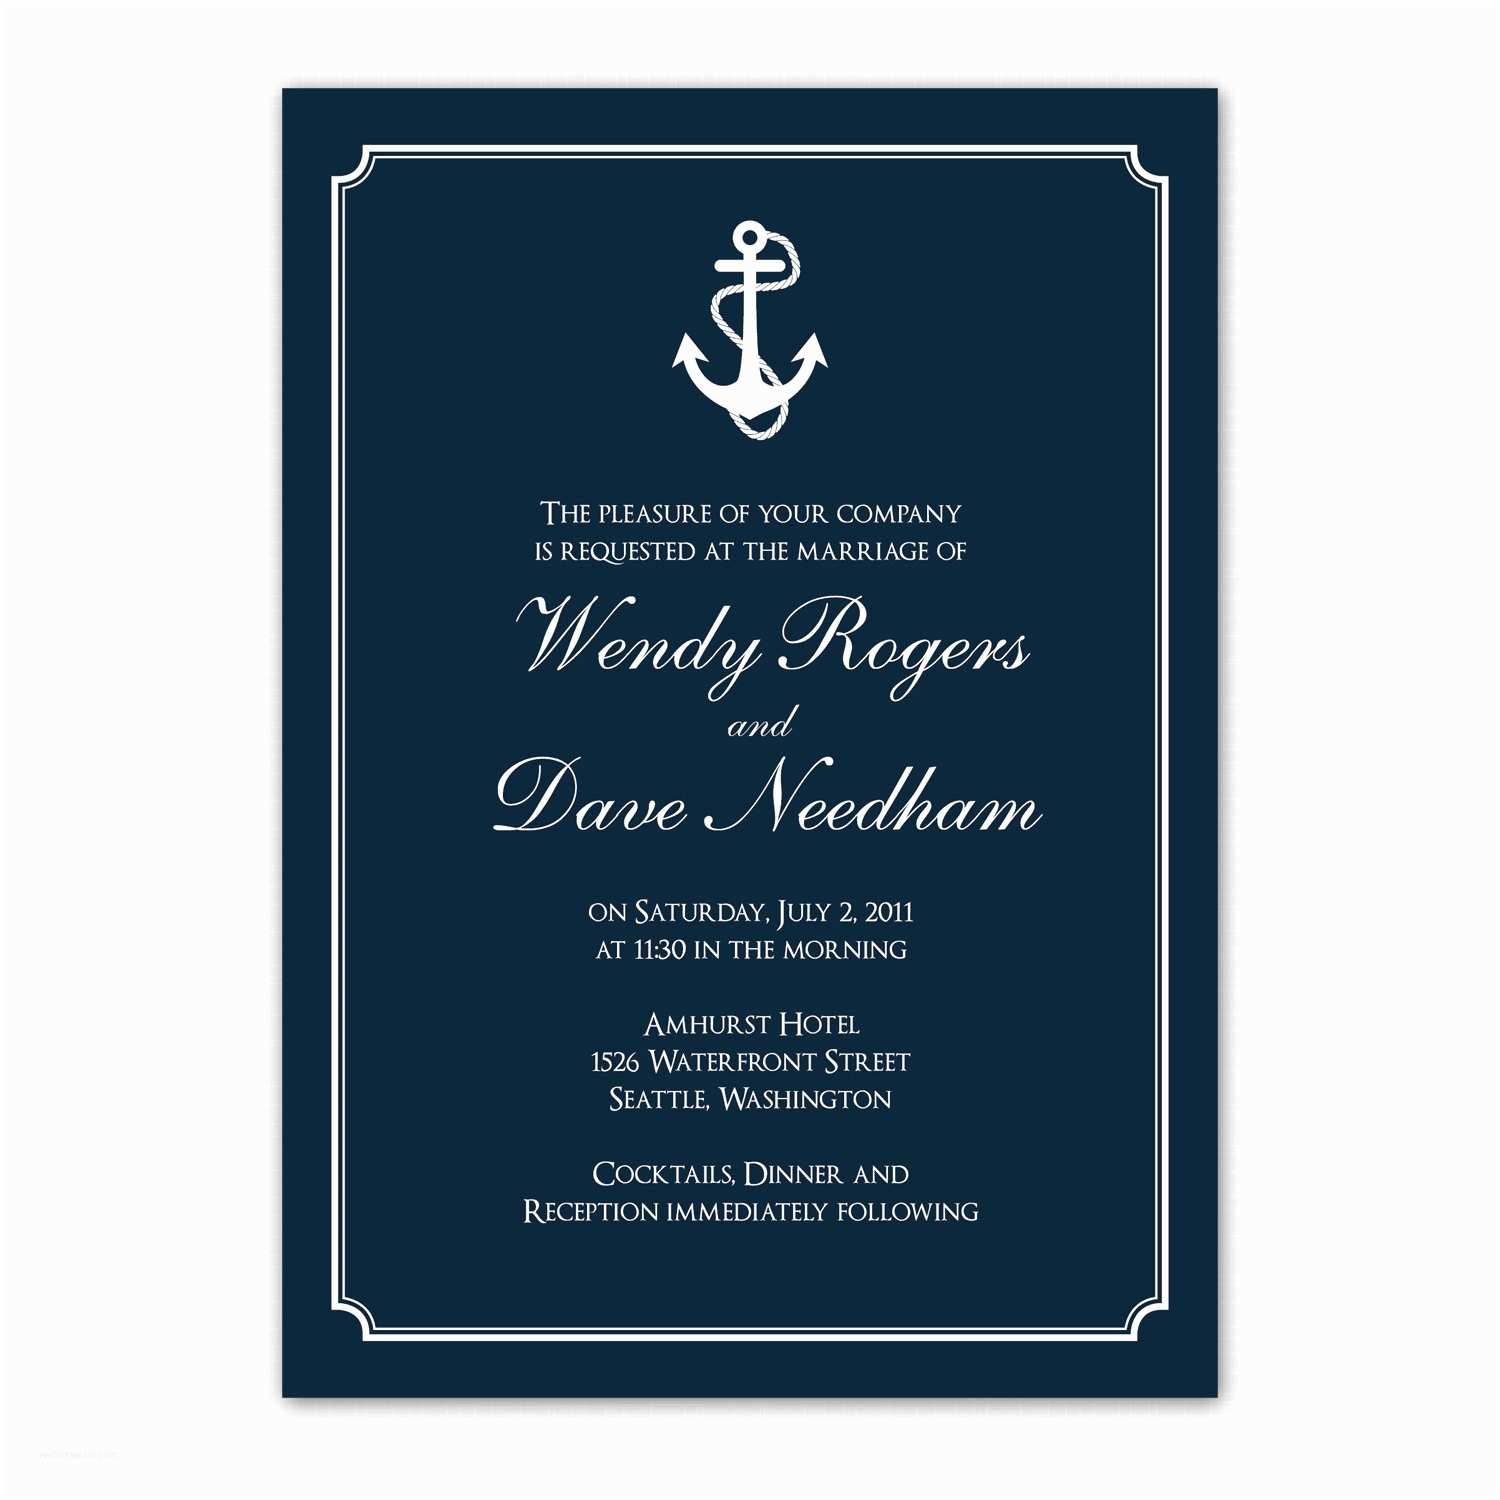 Nautical themed Wedding Invitations Wedding Invitations Nautical theme Copy Nautical themed